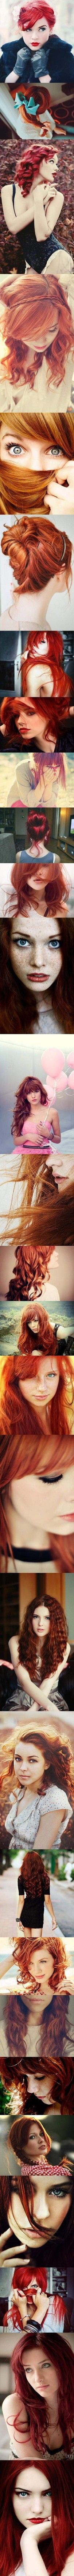 My obsession with red hair